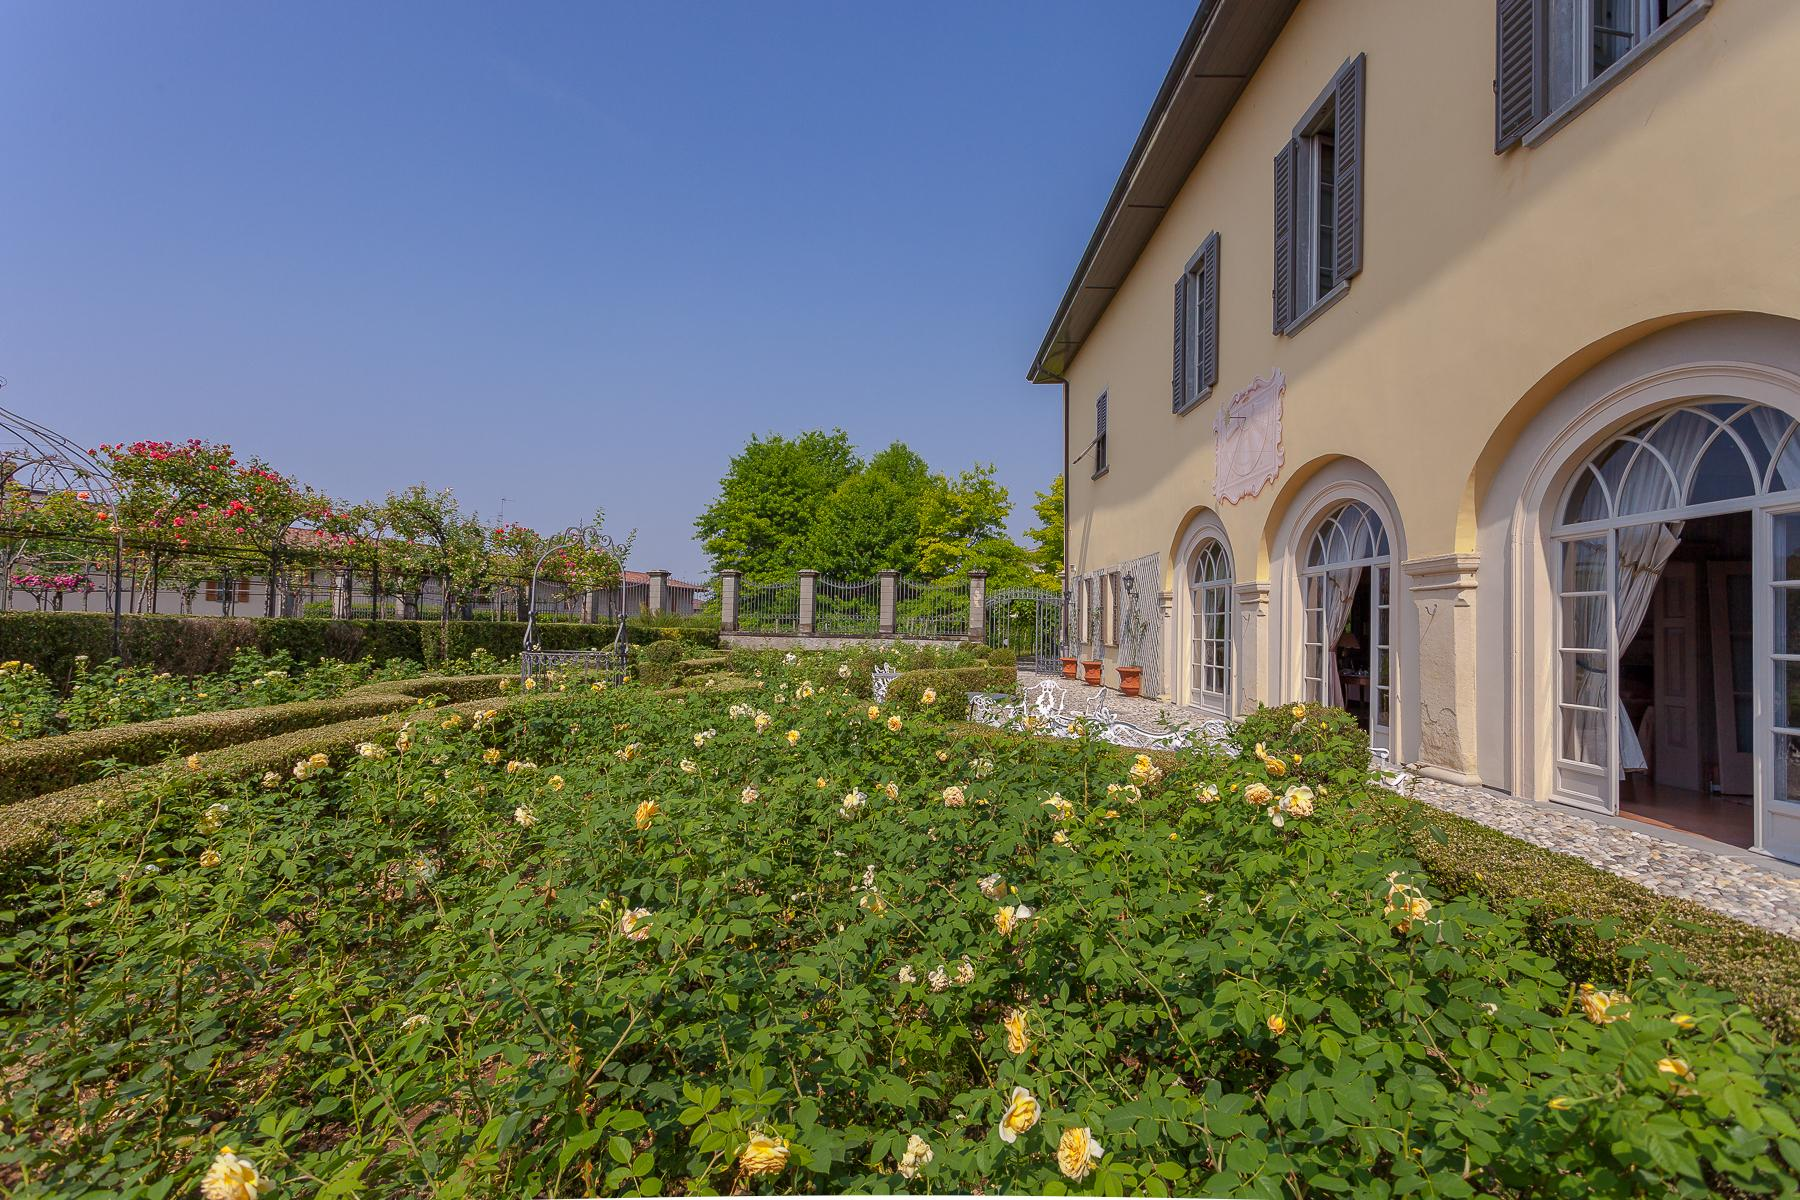 Charming villa with Italian-style garden and park - 4